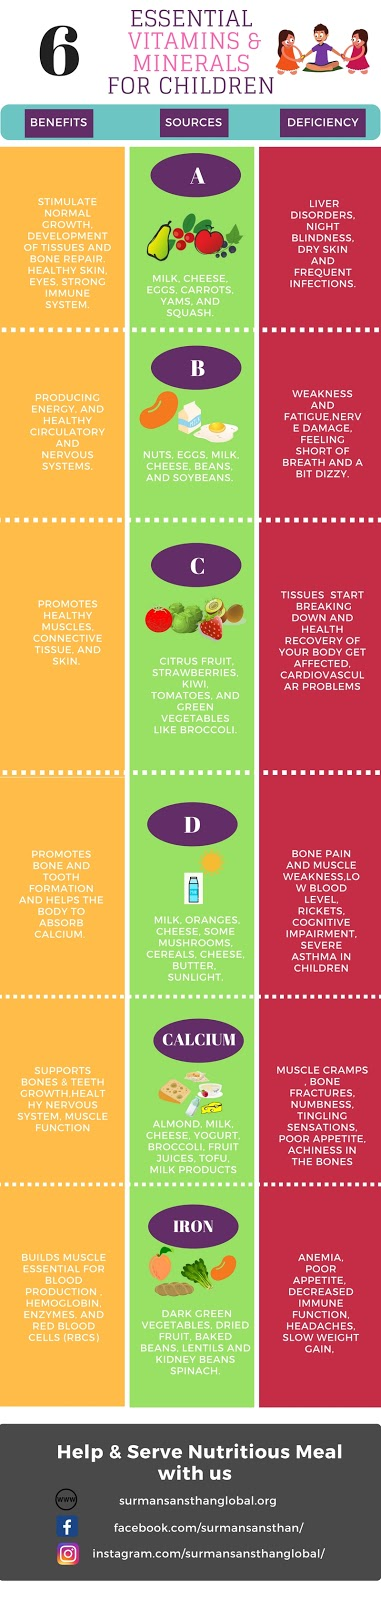 6 Essential Vitamins & Minerals For Children Infographic SurmanSansthan